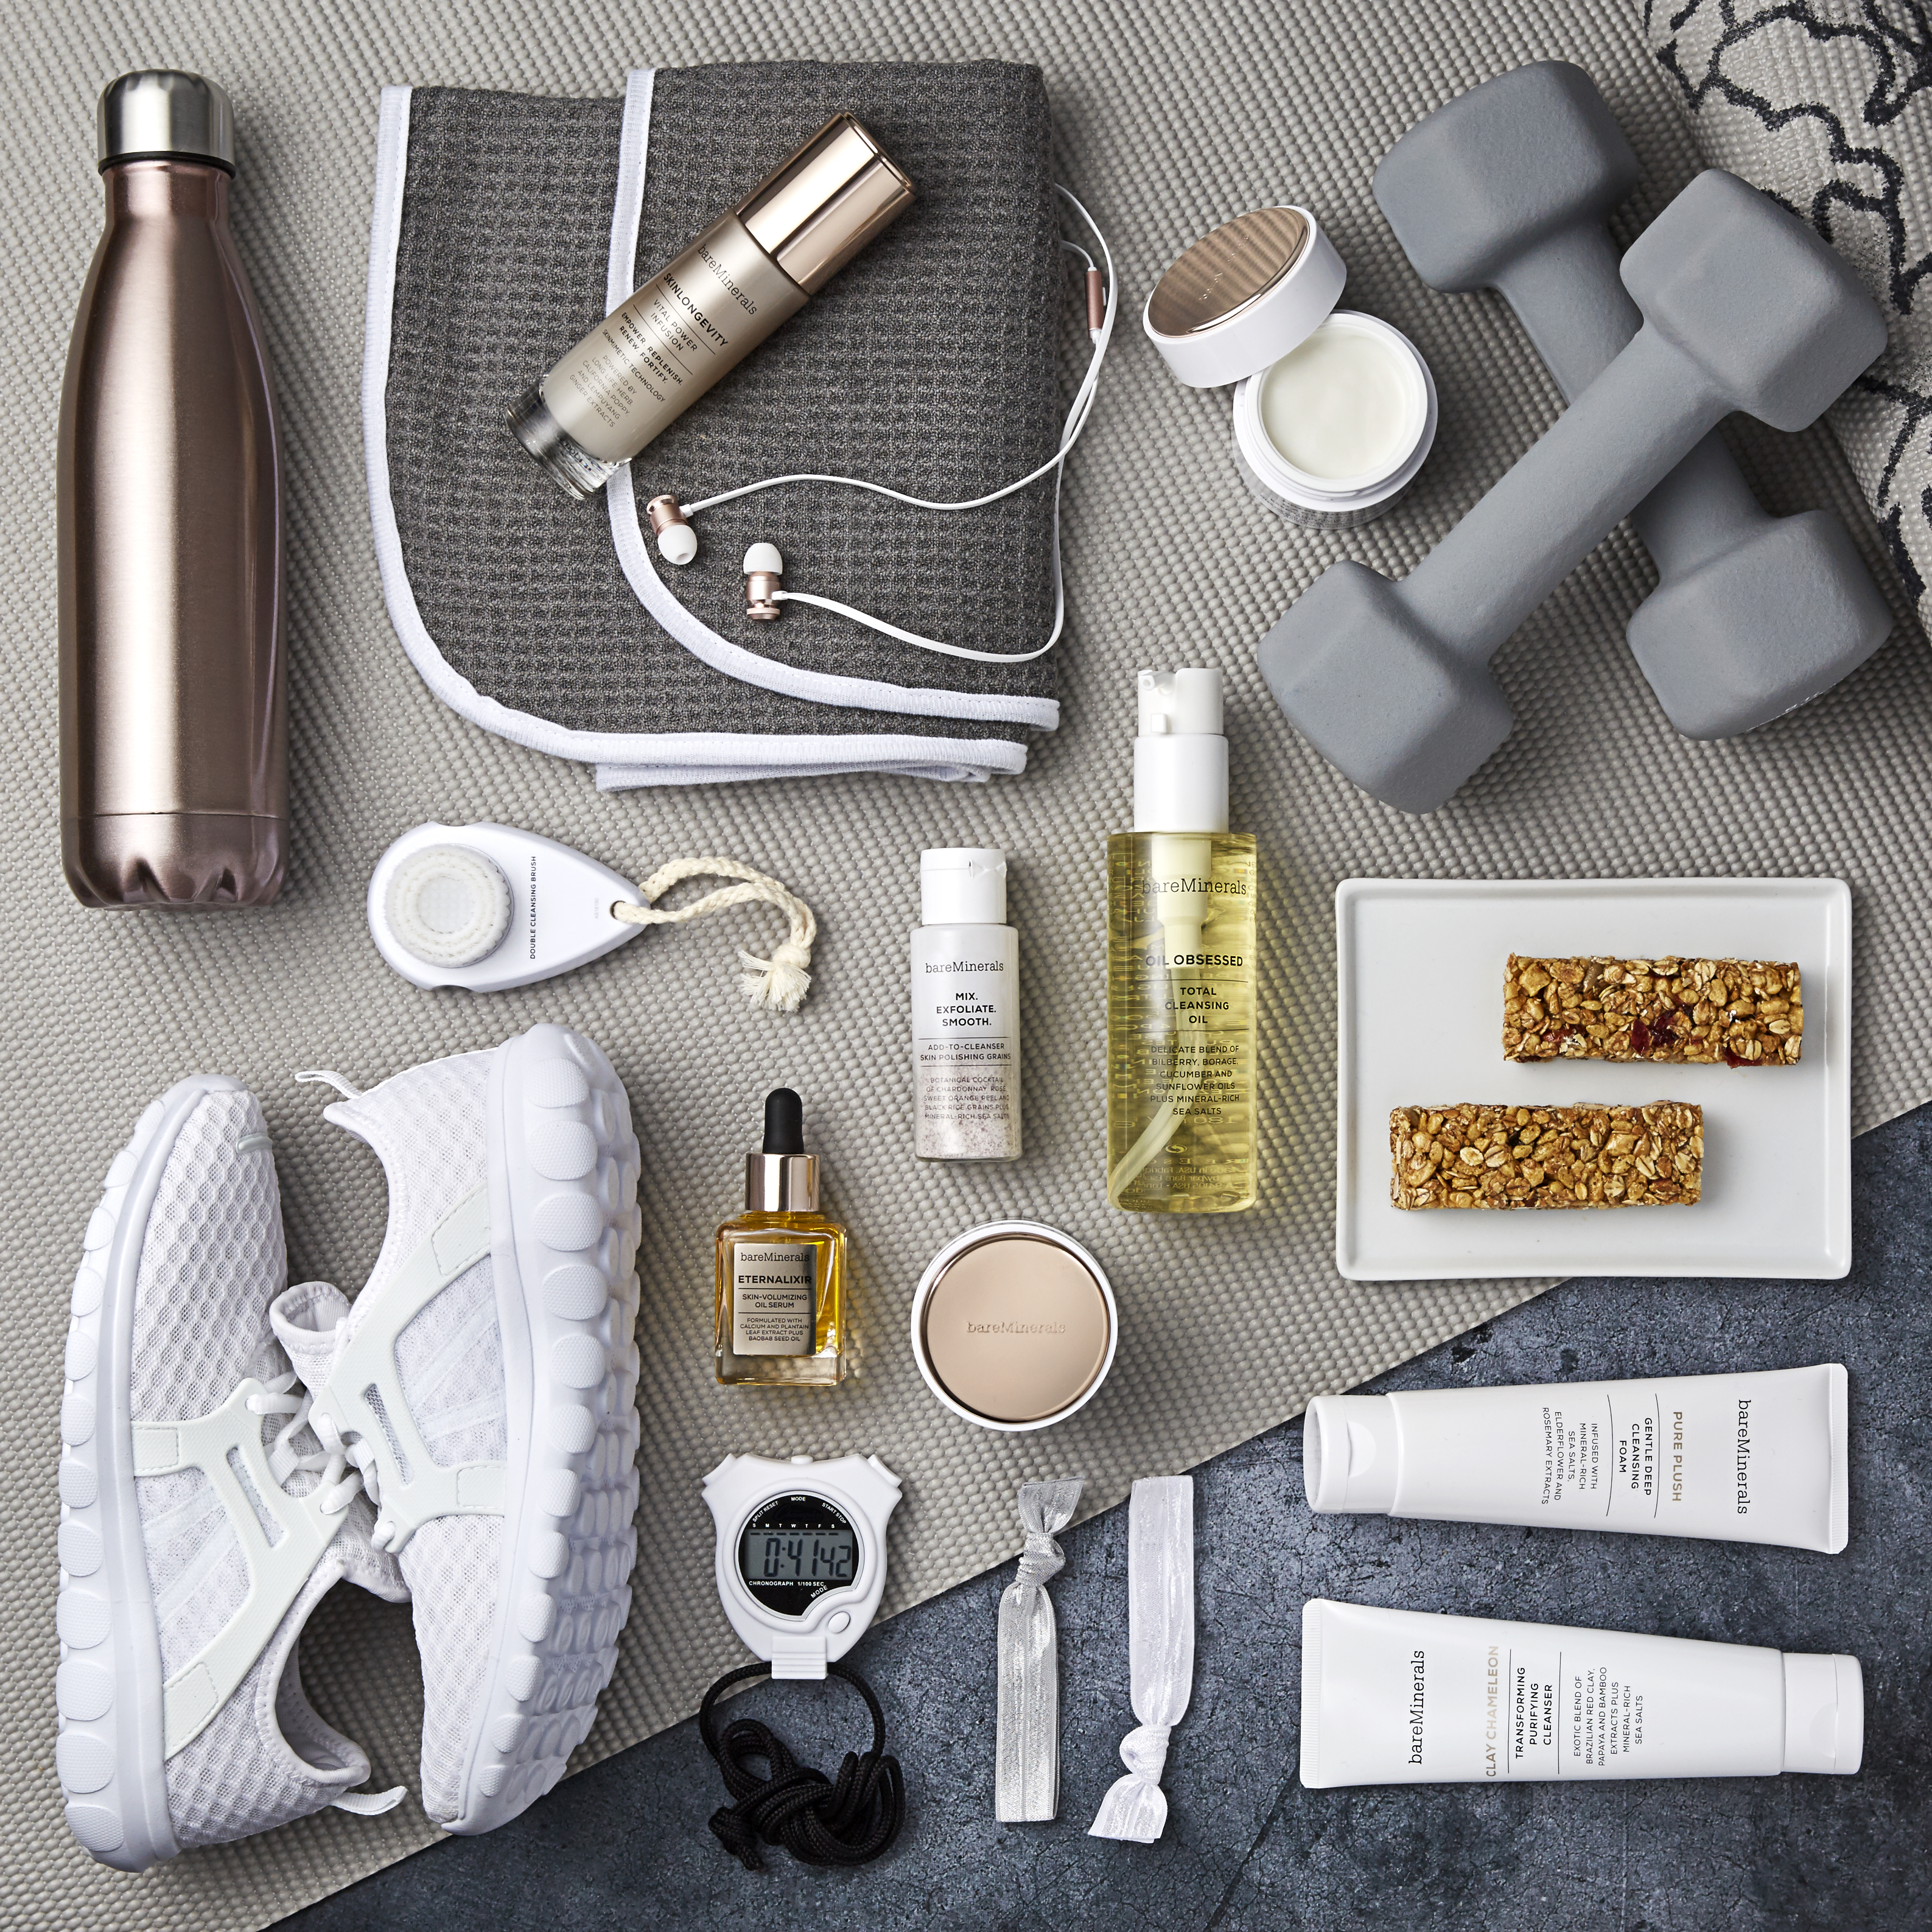 Workout makeup by bareMinerals